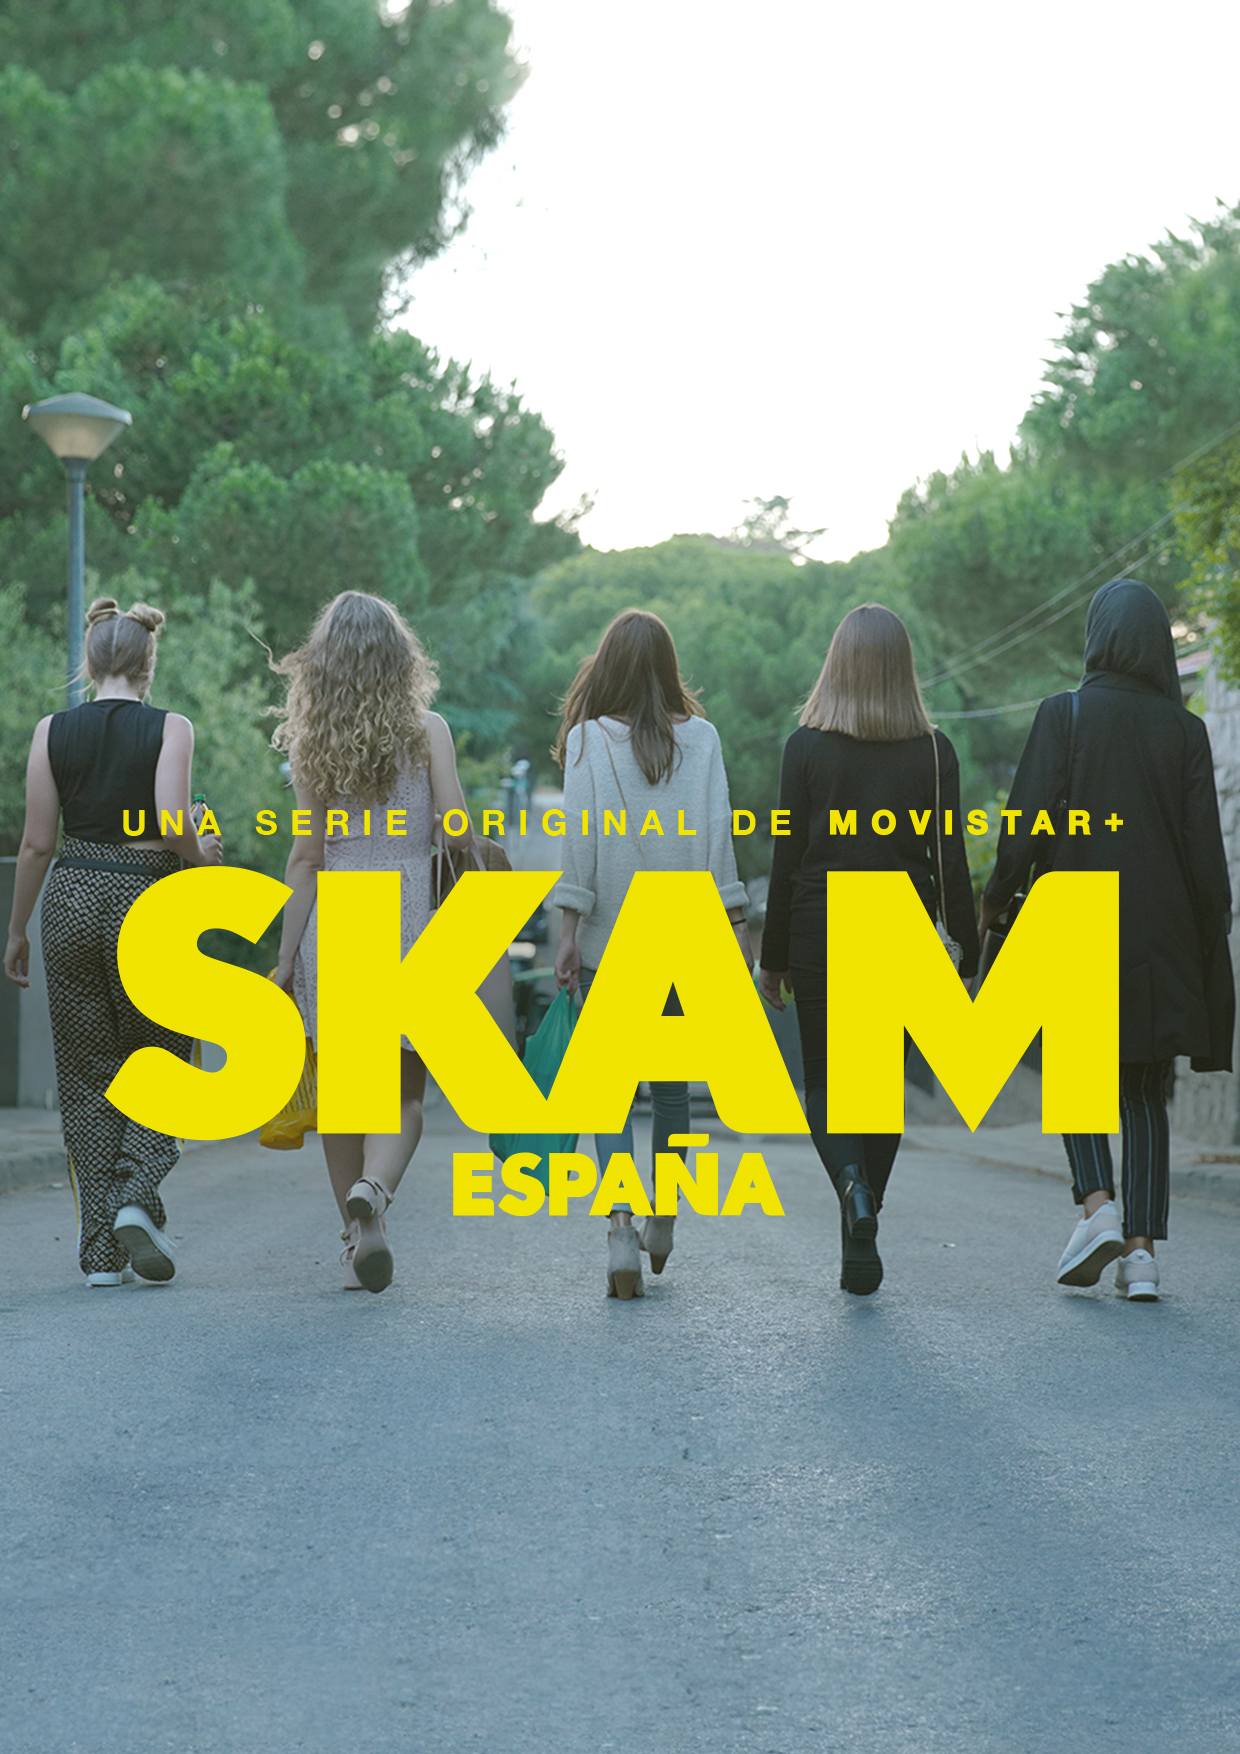 Skam España (TV Series 2018– ) - IMDb